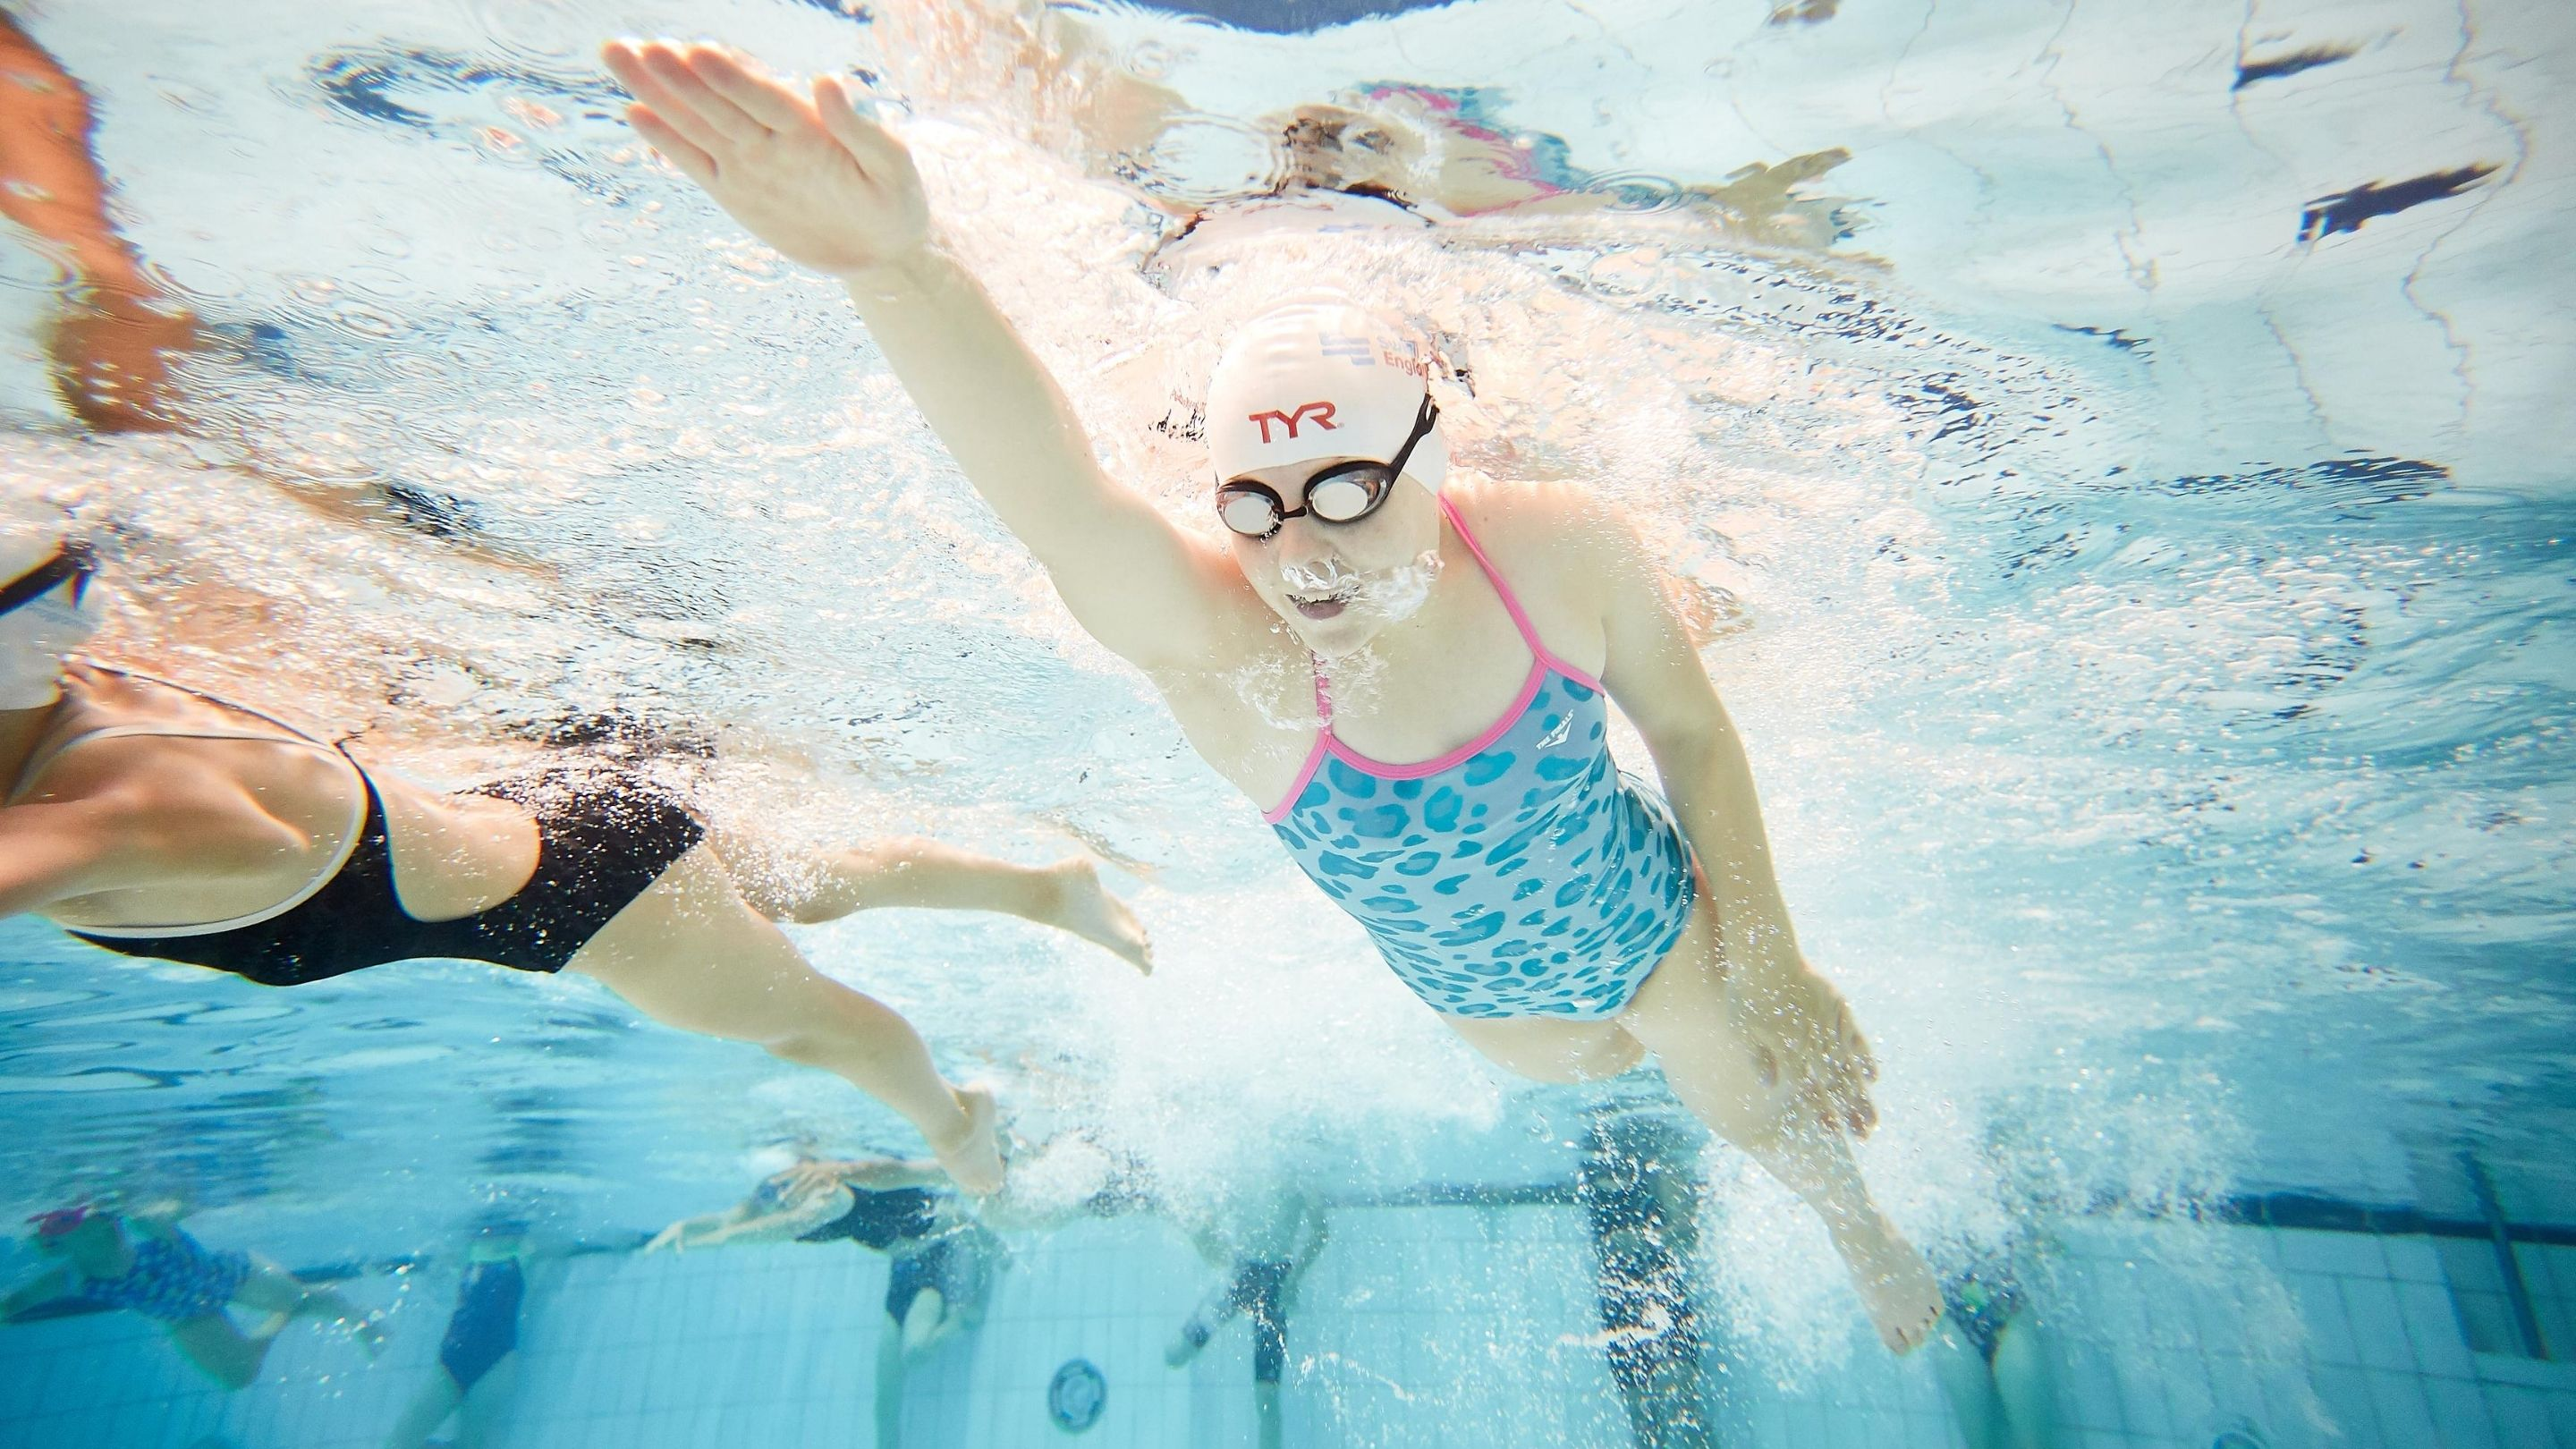 Swim England Learn to Aquatic Skills Framework Stages 8-10 Swimming